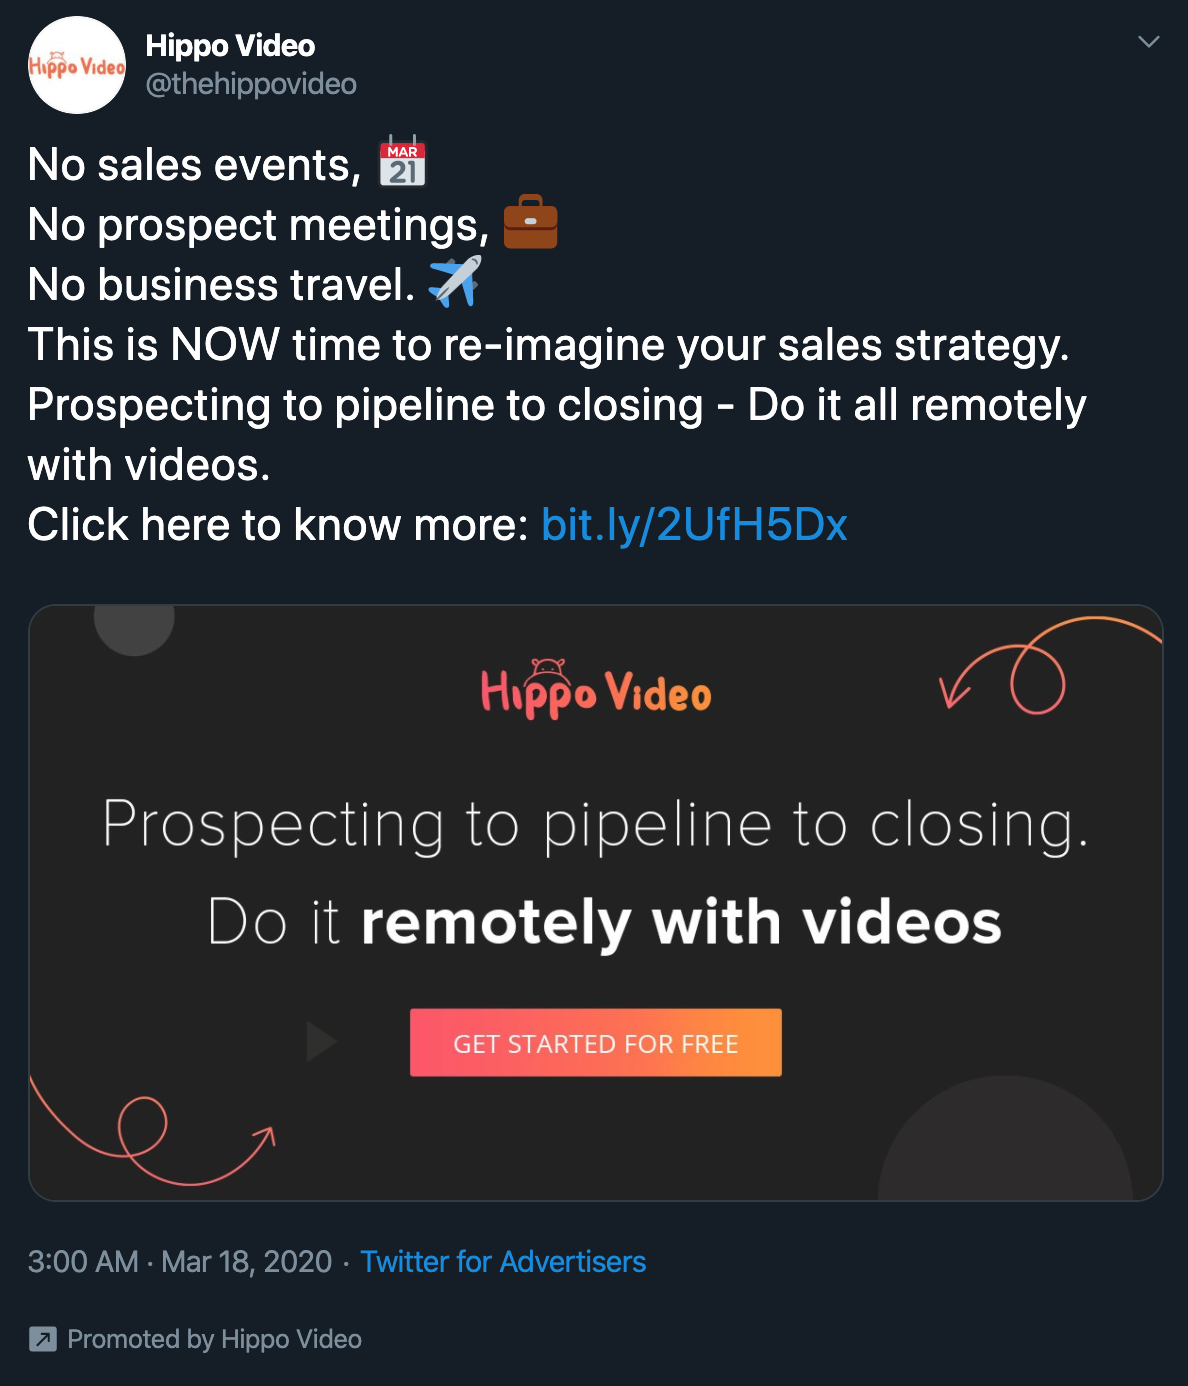 A Hippo Video advertisement